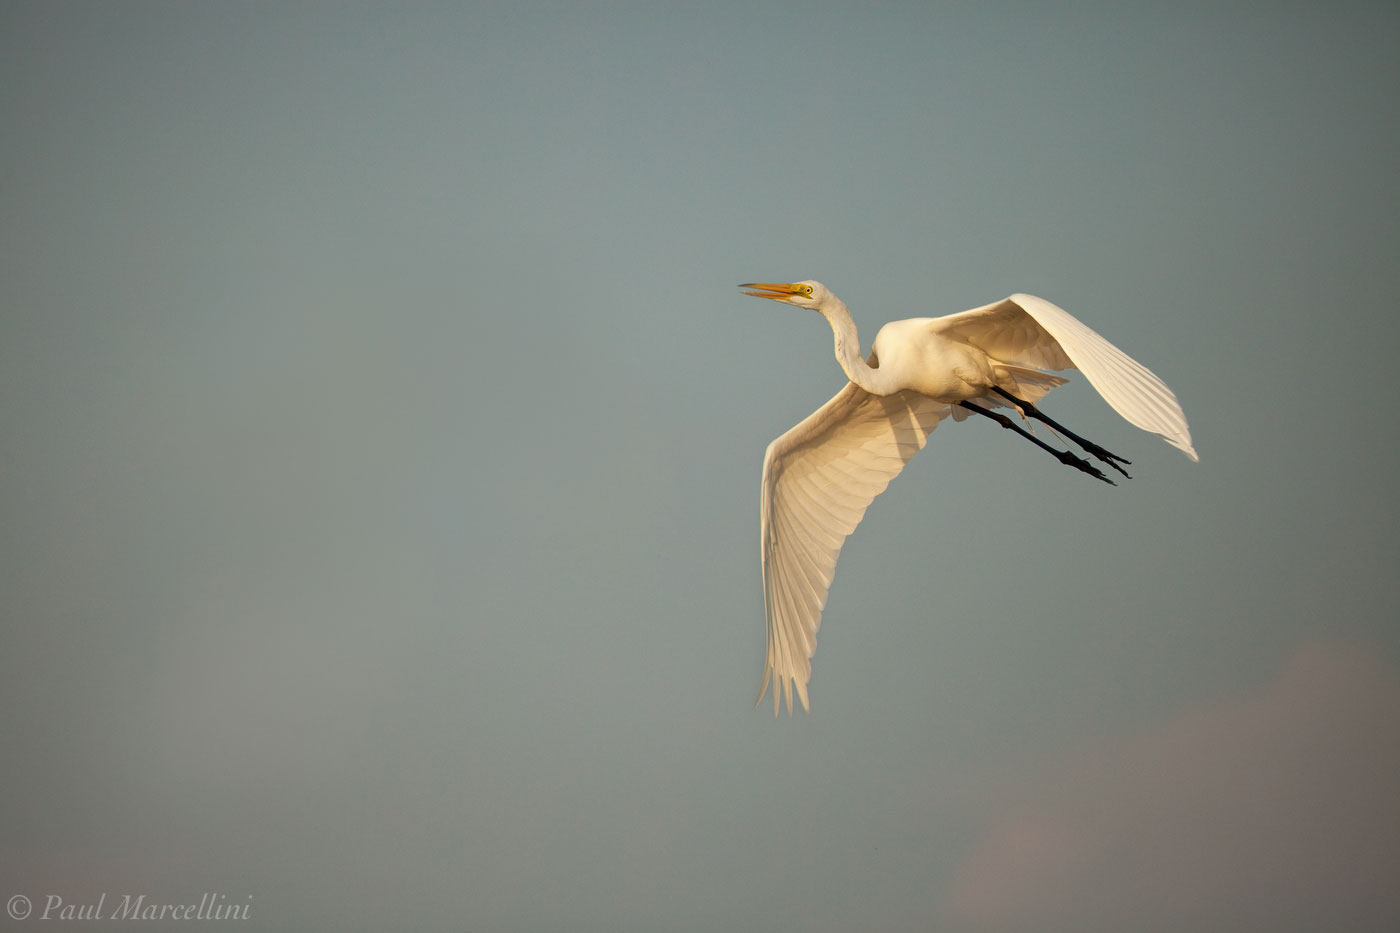 A Great Egret (Ardea alba) flies past in the late afternoon light.